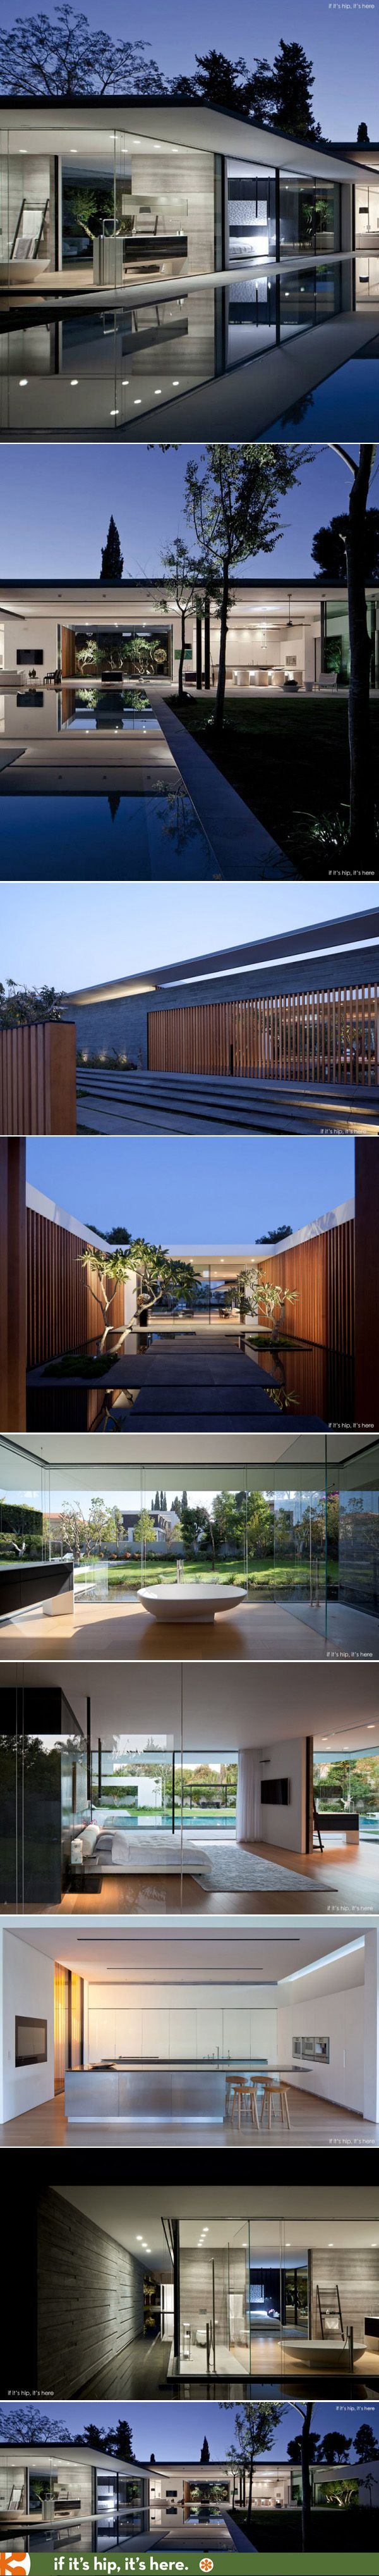 Minimal and modern, the house's characteristic style is defined by the planar surfaces. #architecture #modern